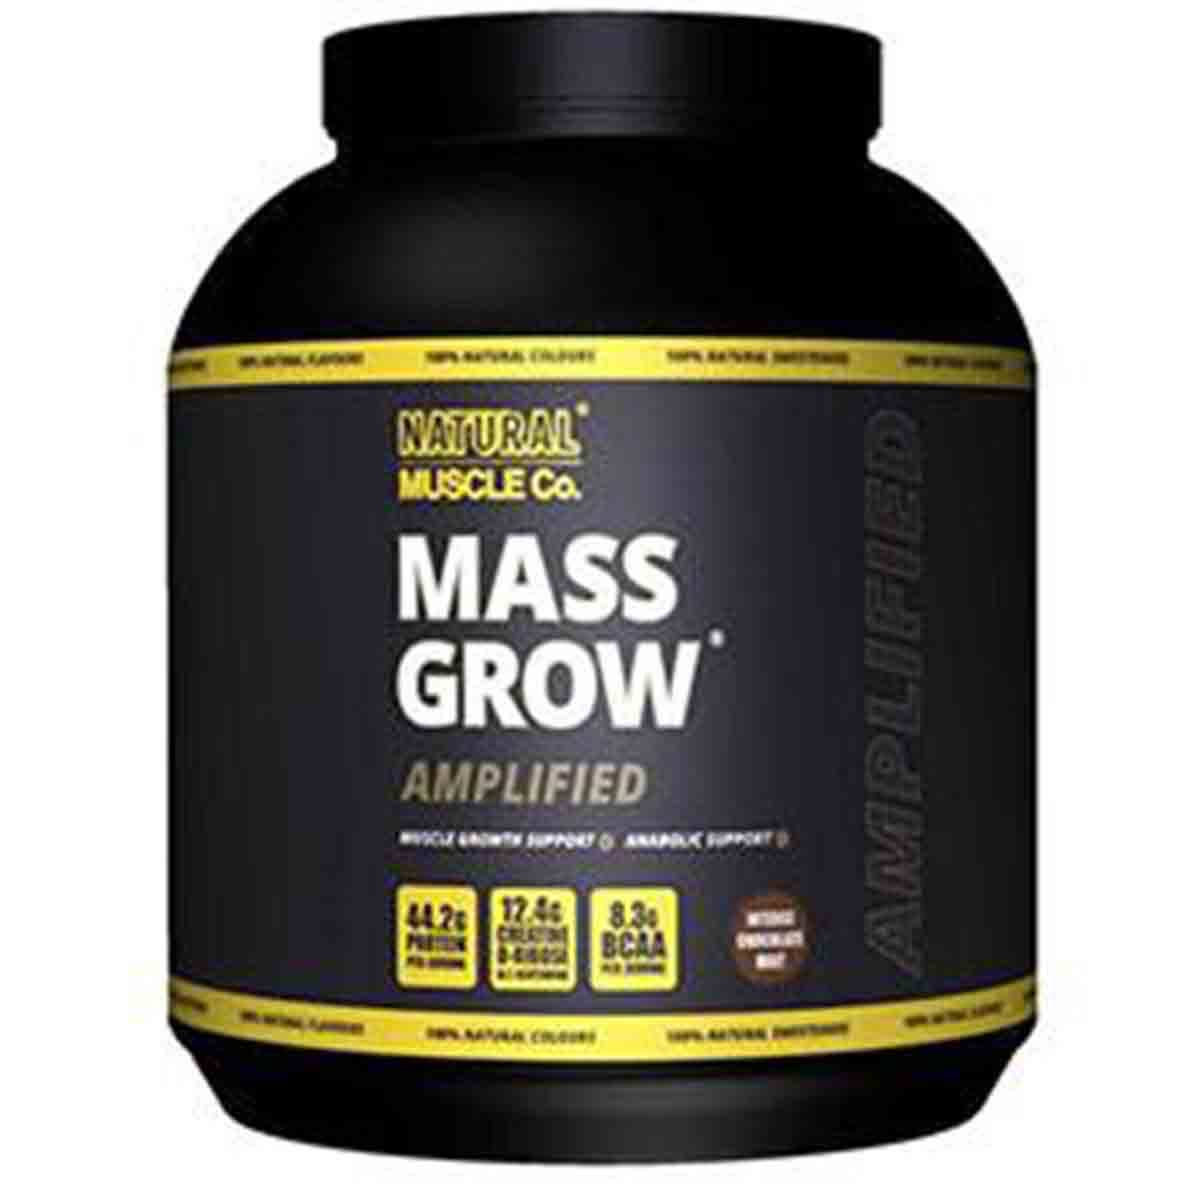 Mass Grow Amplified Natural Muscle Co